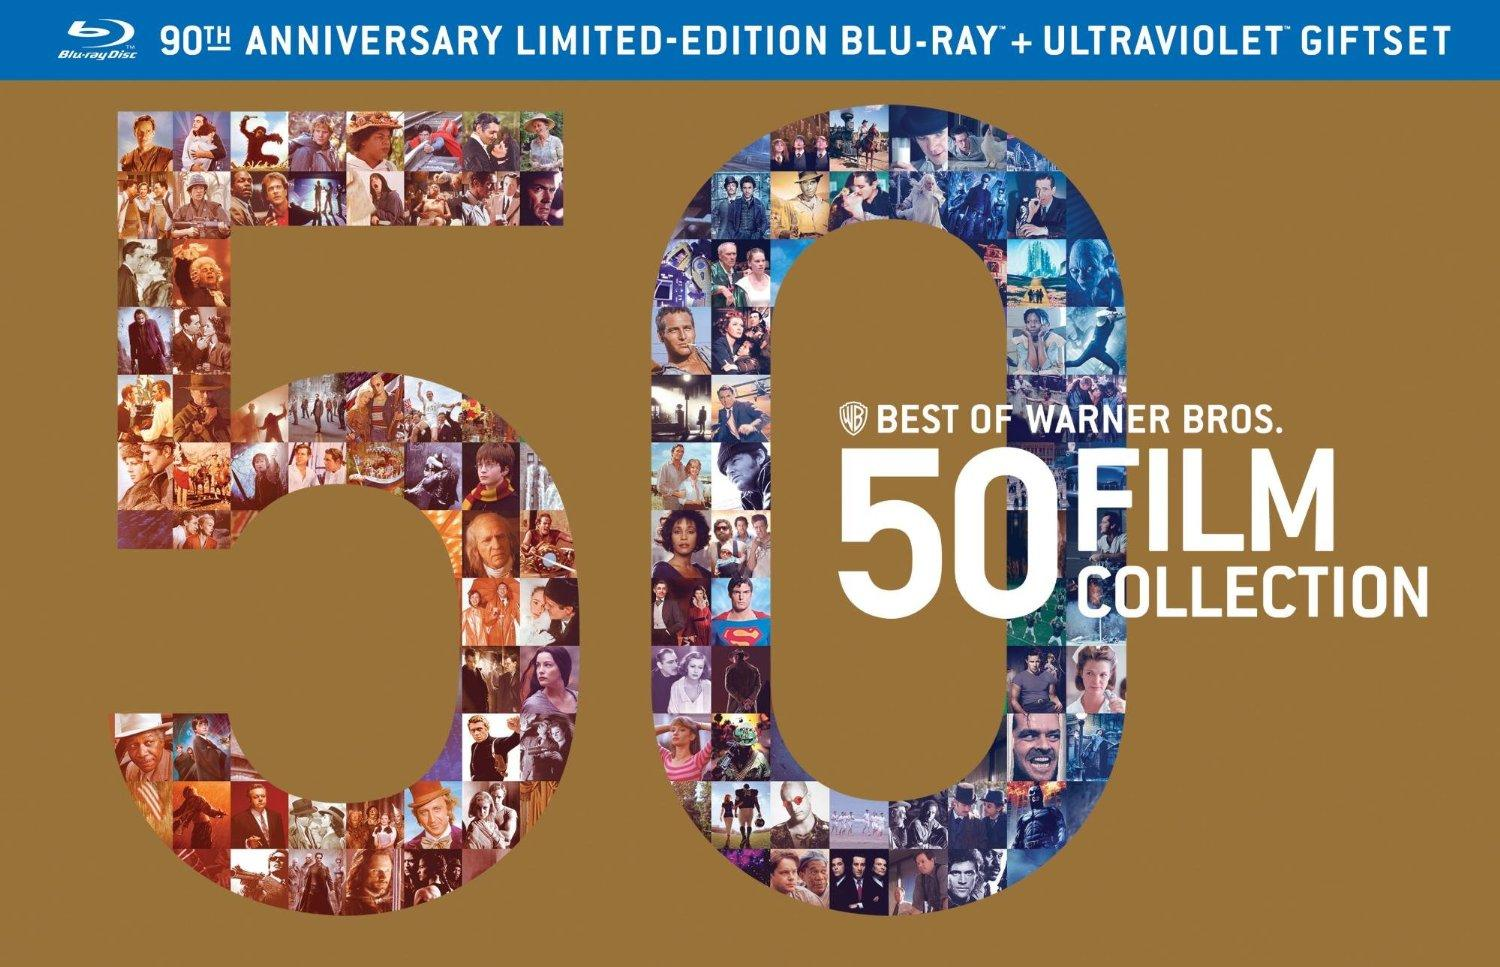 $89.99 Best of Warner Bros 50 Film Collection (+UltraViolet Digital Copy) [Blu-ray]